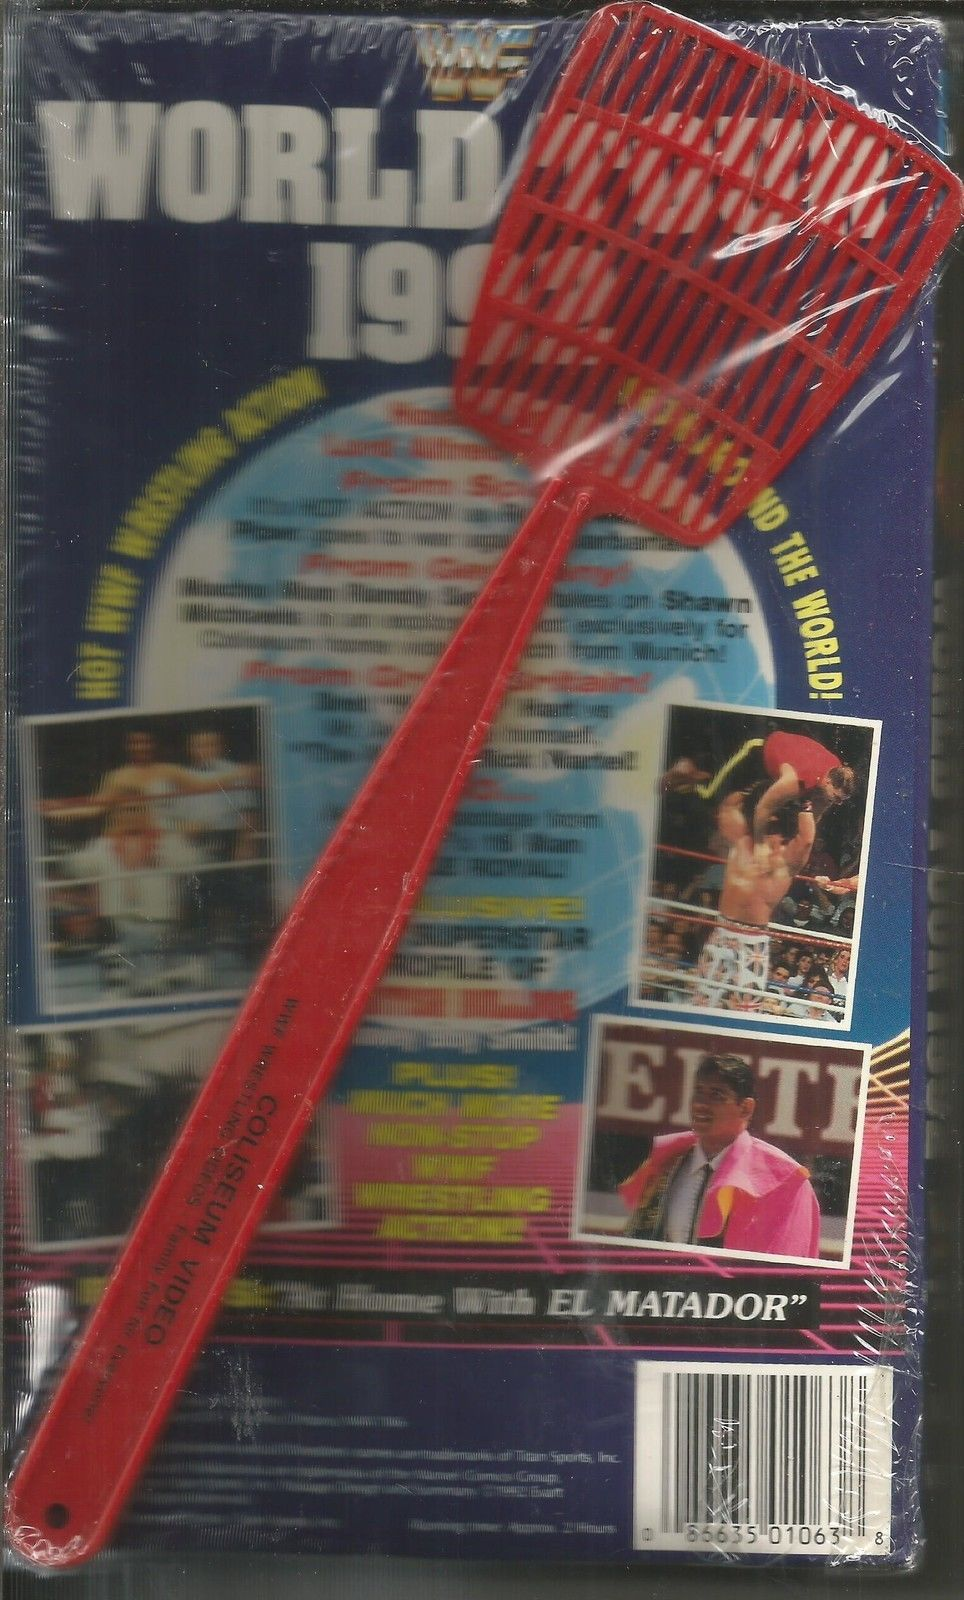 WWF World Tour 1992 with fly swatter 2